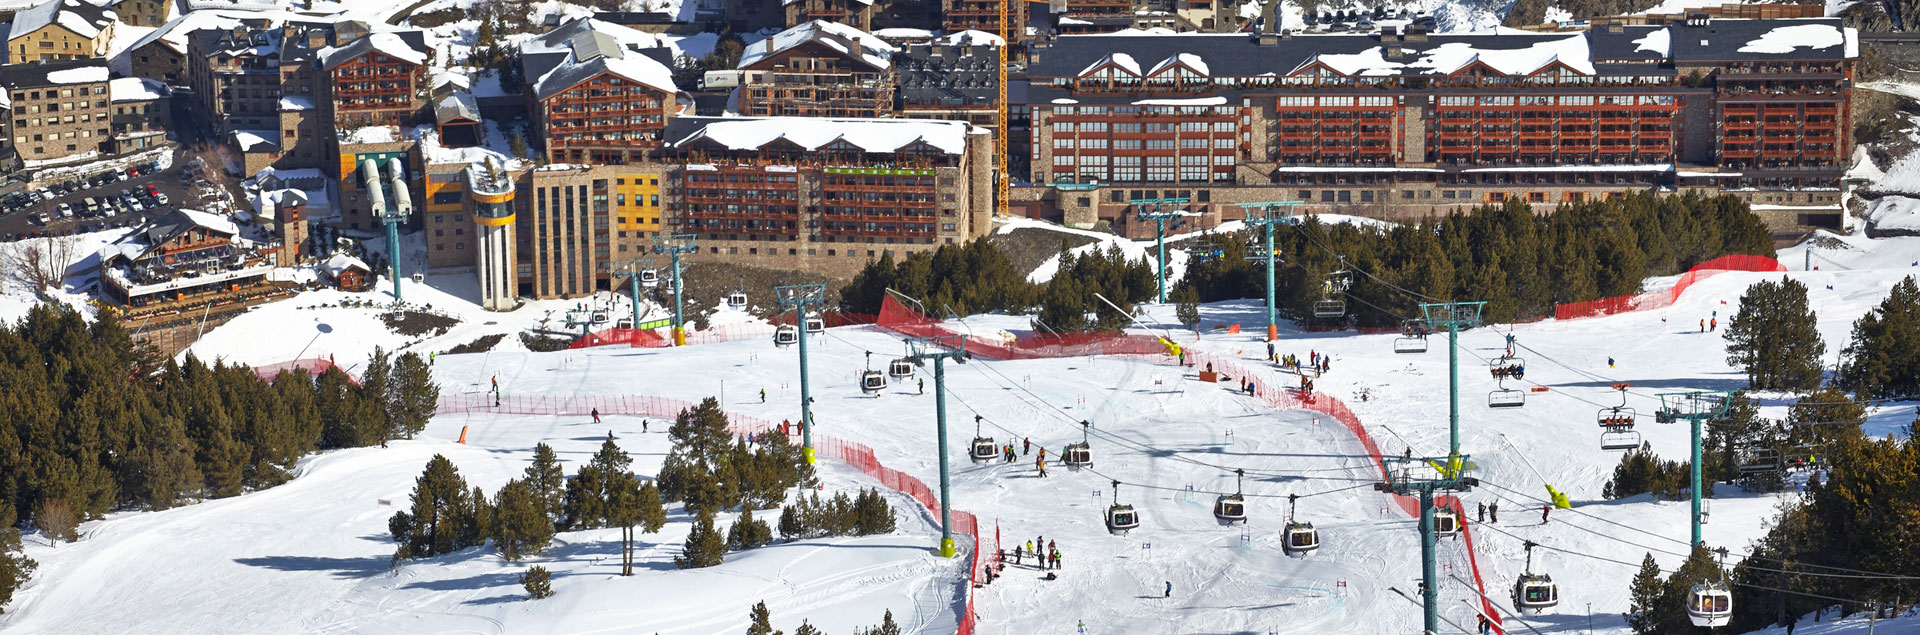 Accommodation in Grandvalira Soldeu, 4 & 5* hotels and Spa